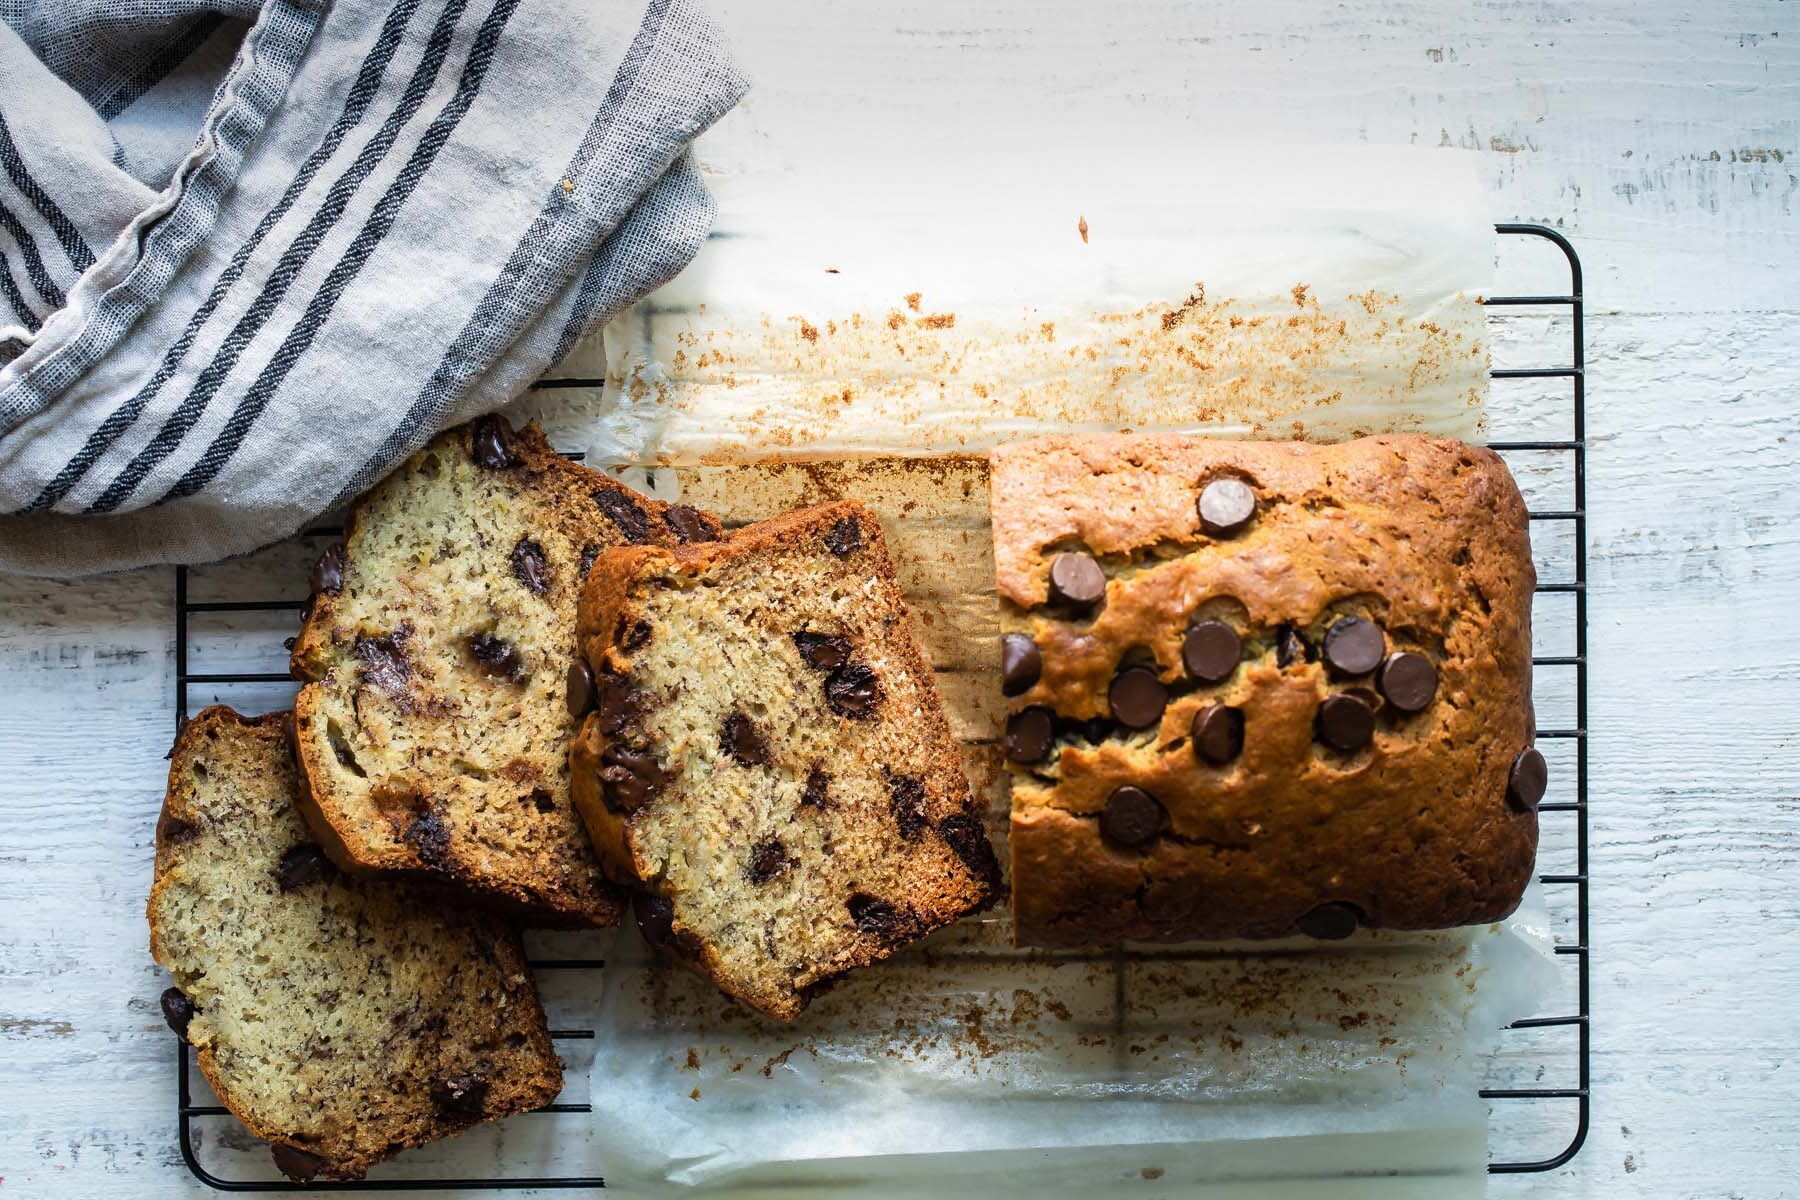 A loaf of banana bread with three pieces sliced on a cooling rack.